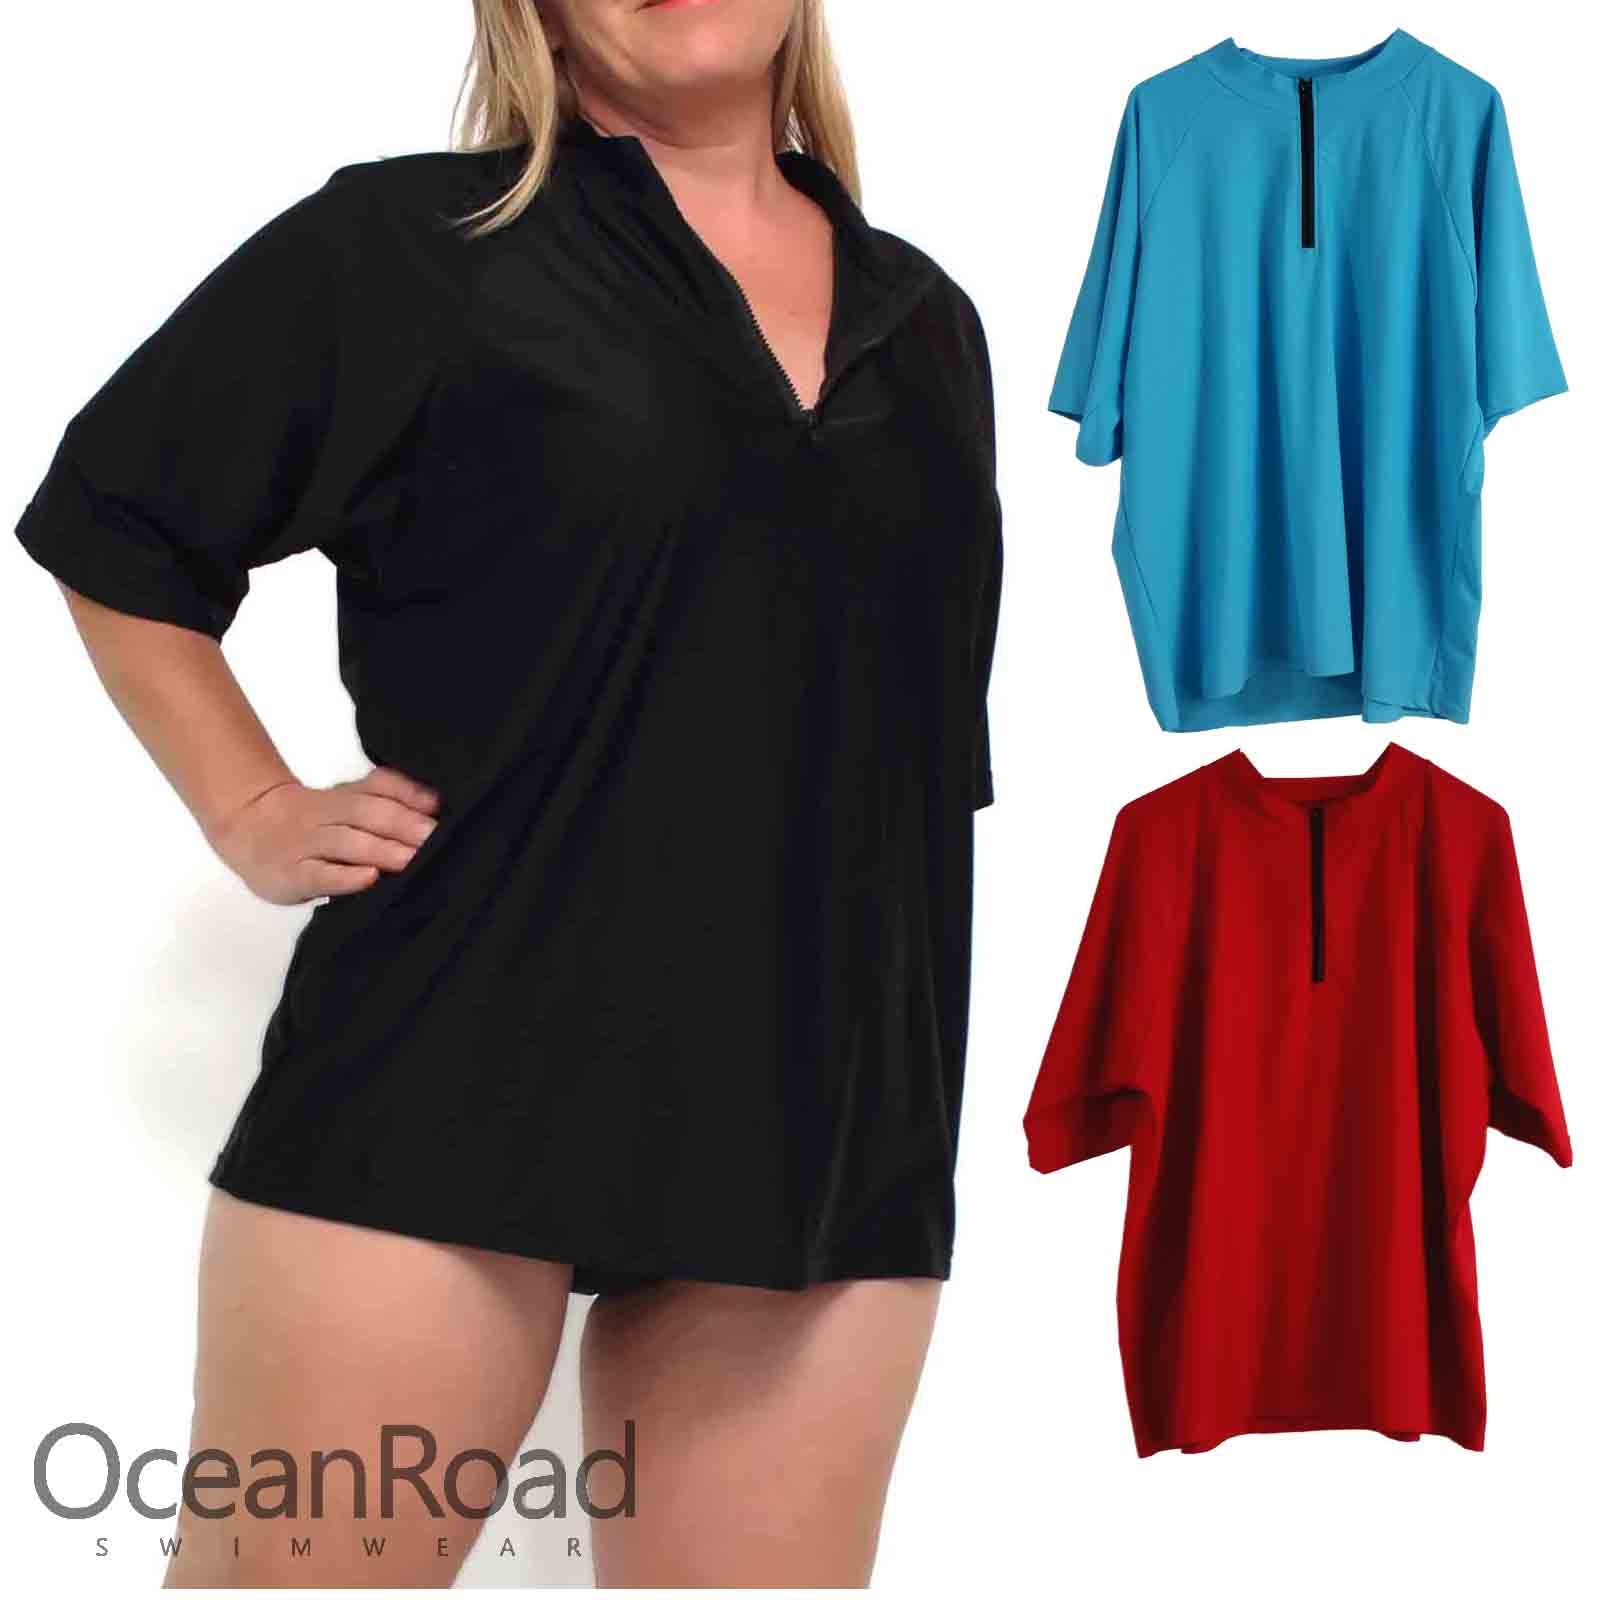 5bff2d794ce4b LADIES PLUS SIZE LOOSE FIT RASHIE · Ladies Rashie Plus Size with Black Short  Sleeves and Zip